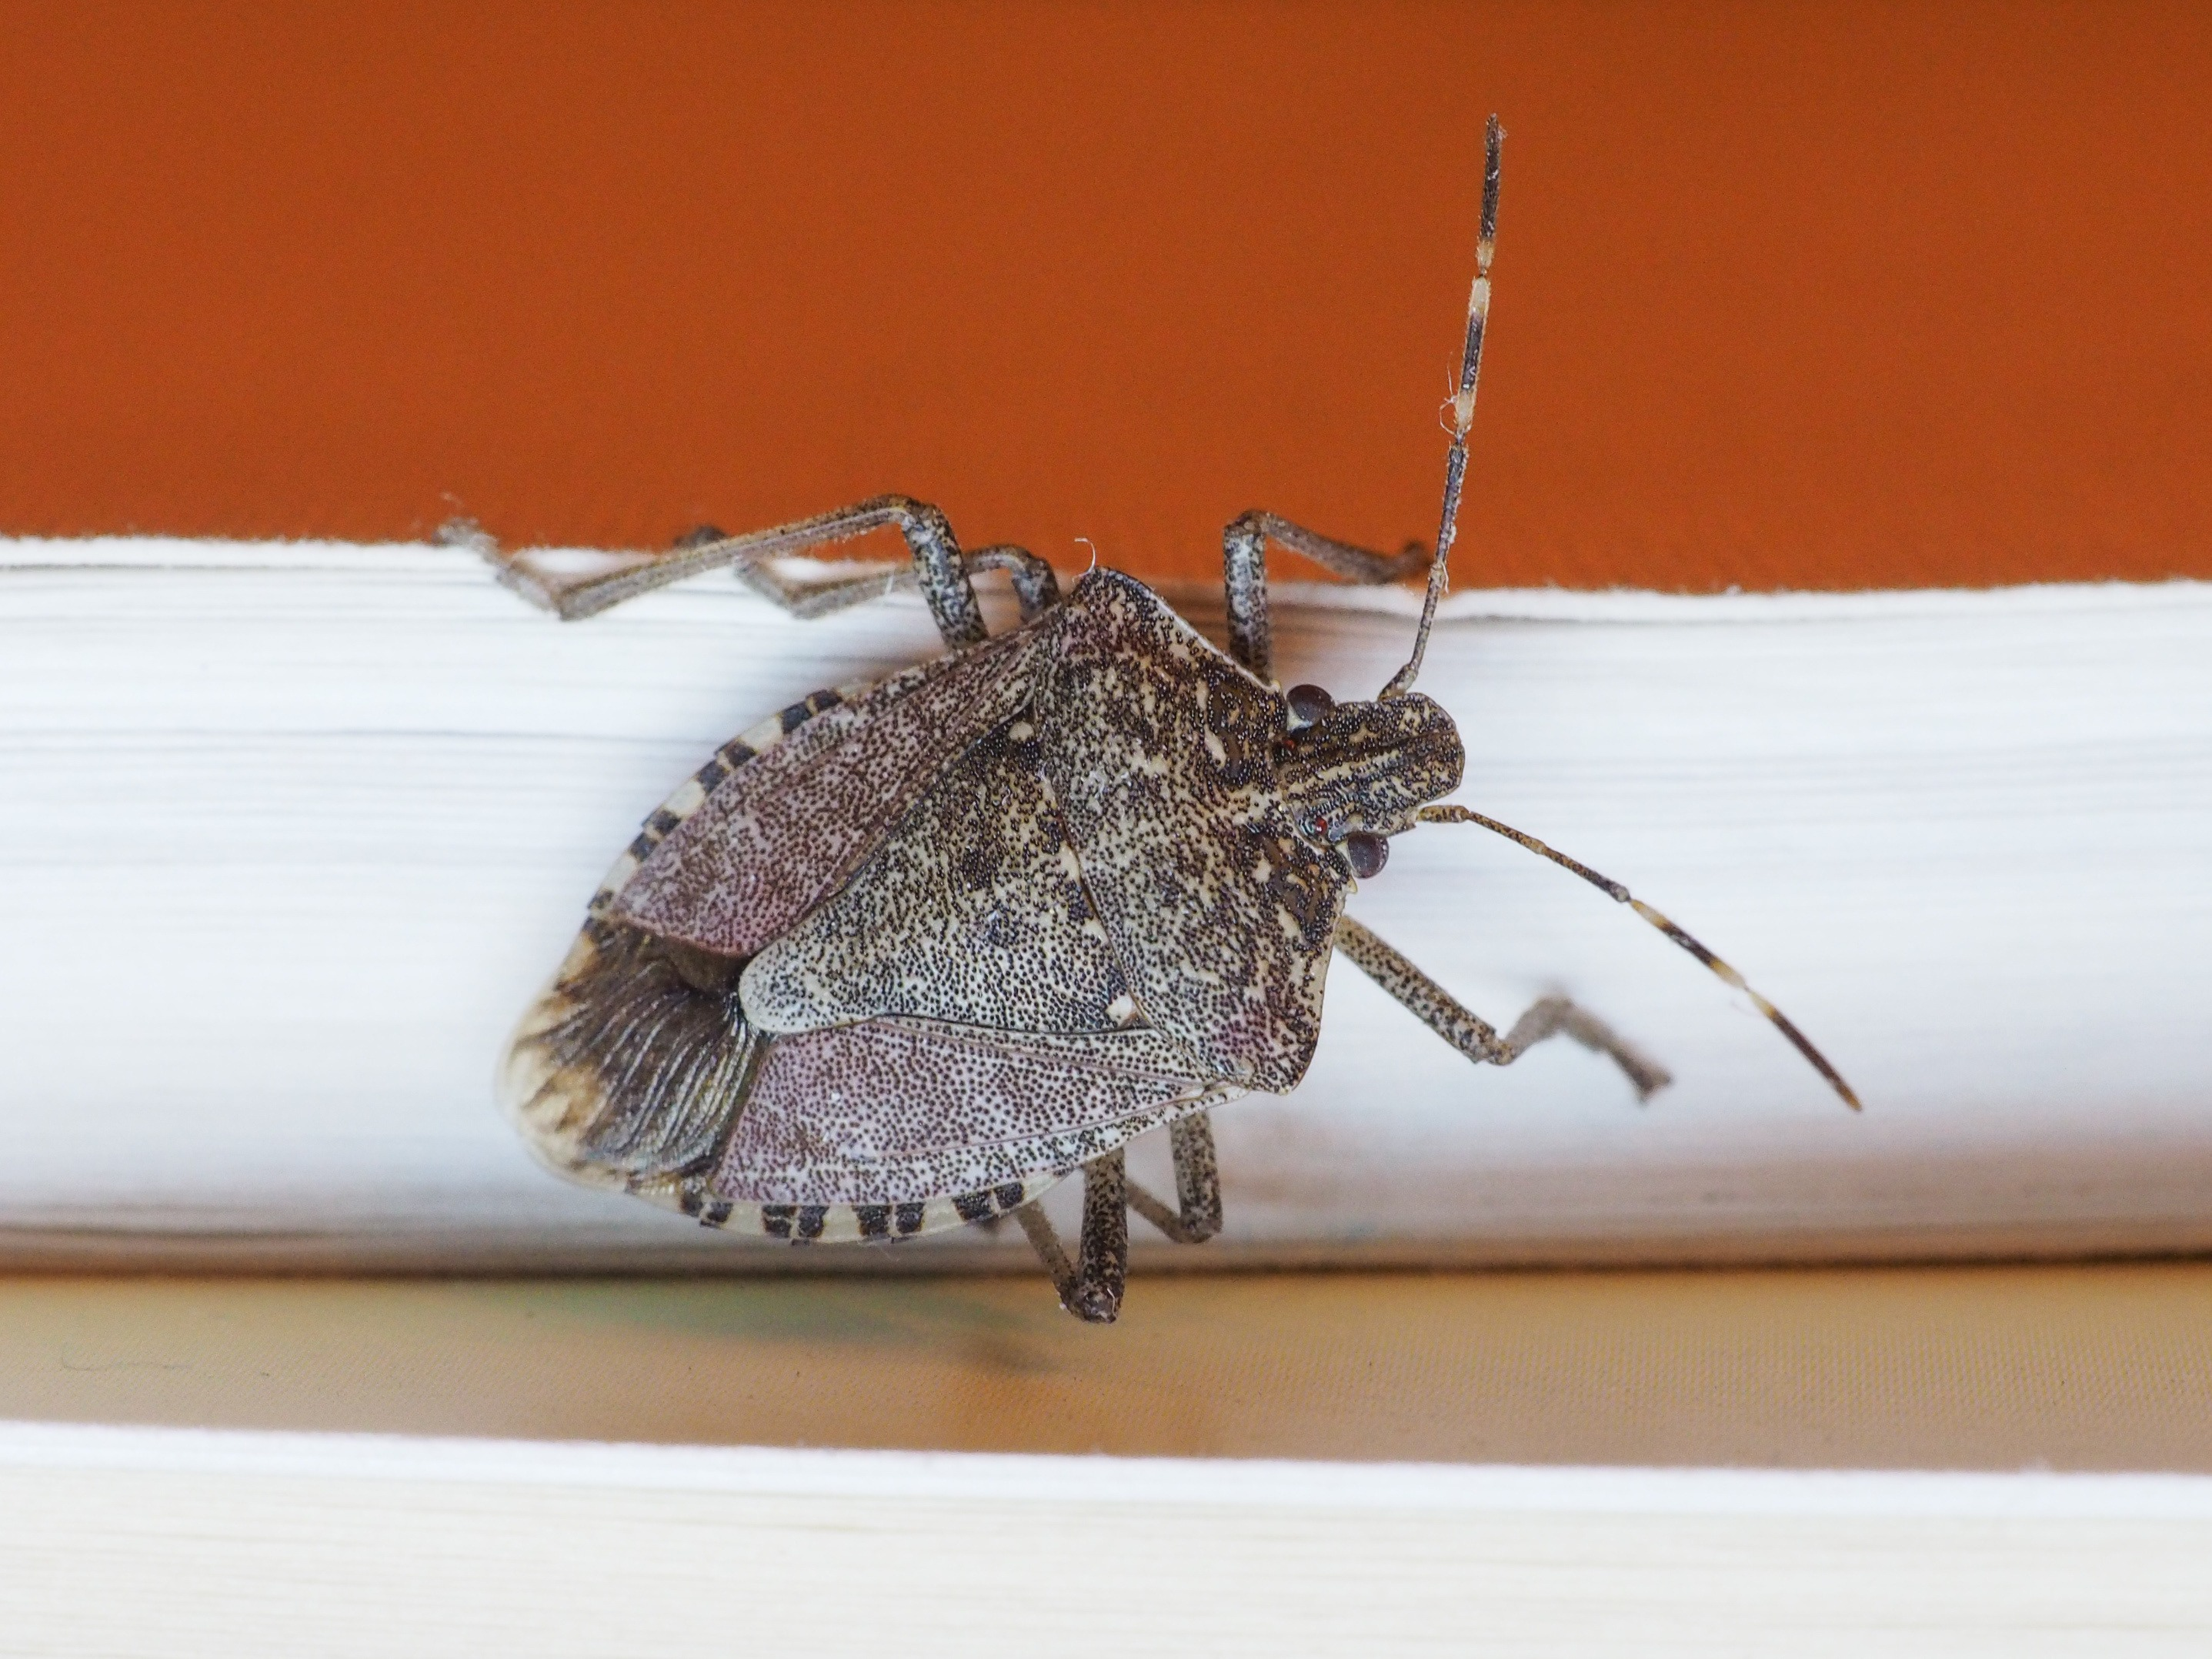 A brown stink bug on the white molding of a wall inside a home with orange painted walls.